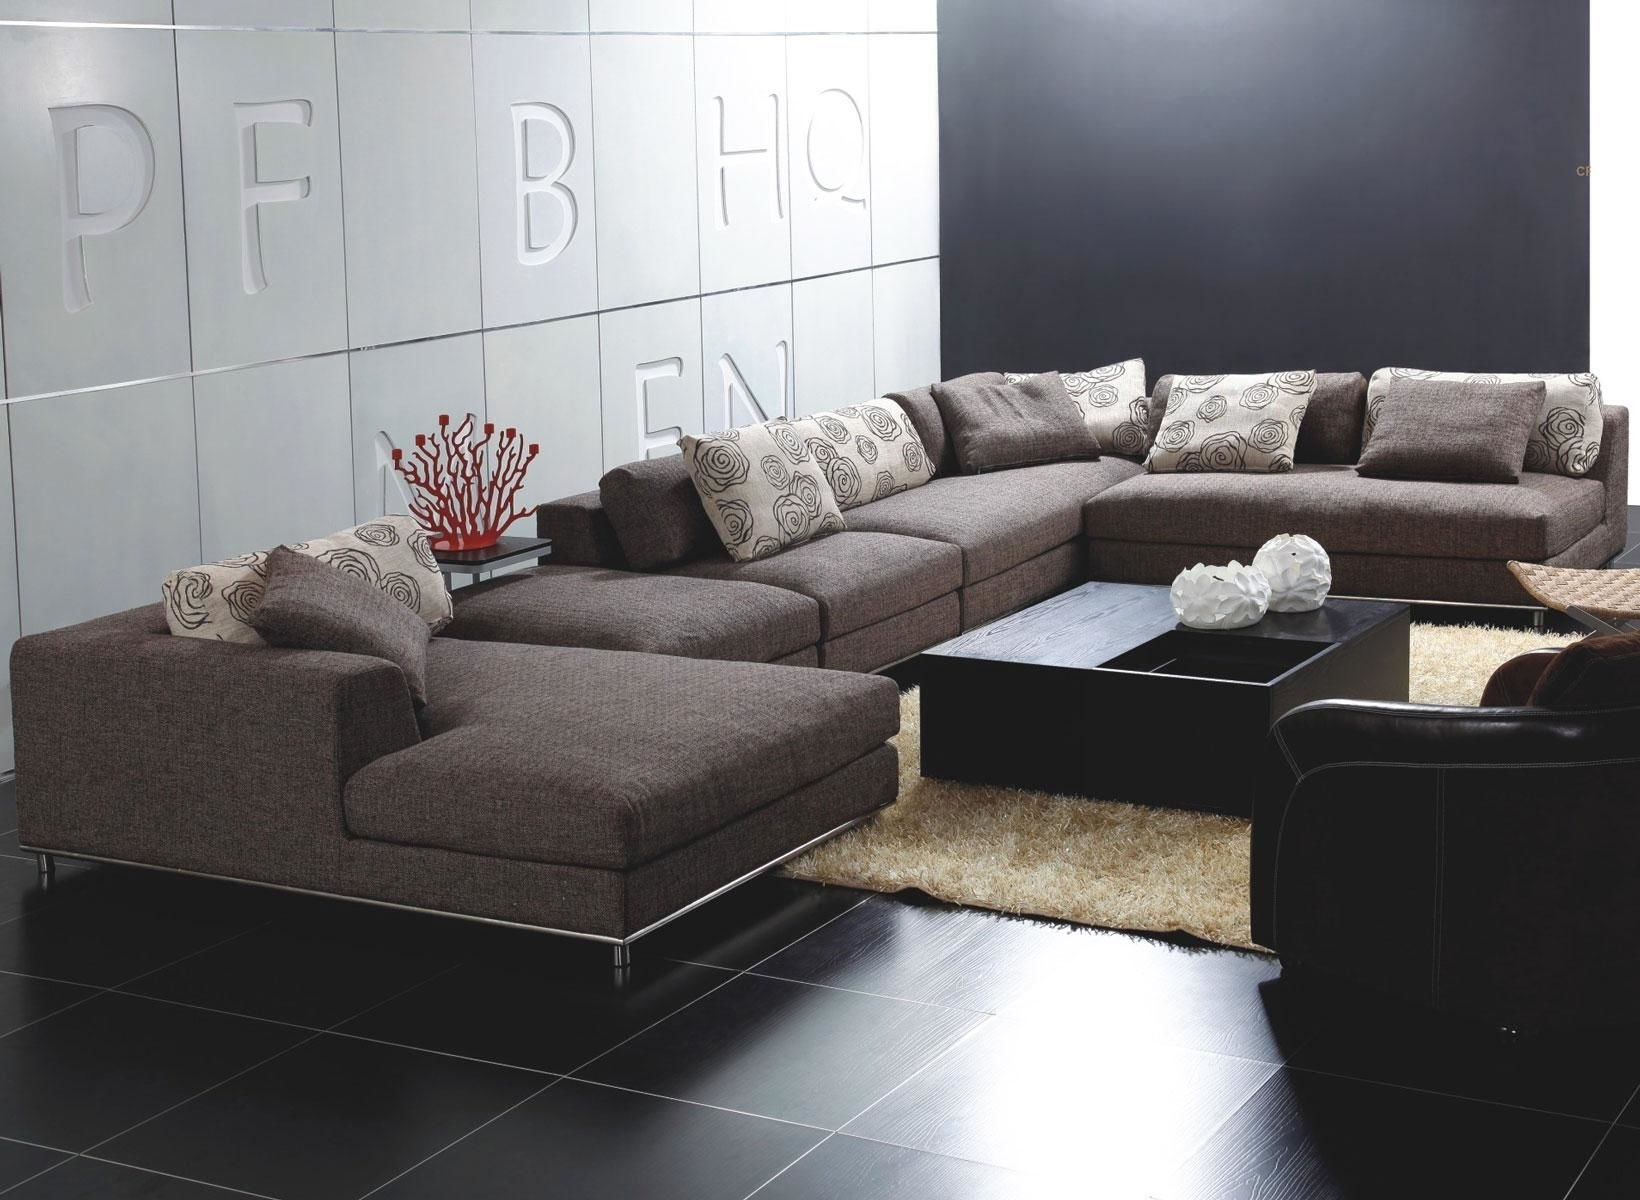 Brilliant Sectional Sofas Austin Tx – Buildsimplehome In Austin Sectional Sofas (Image 3 of 10)